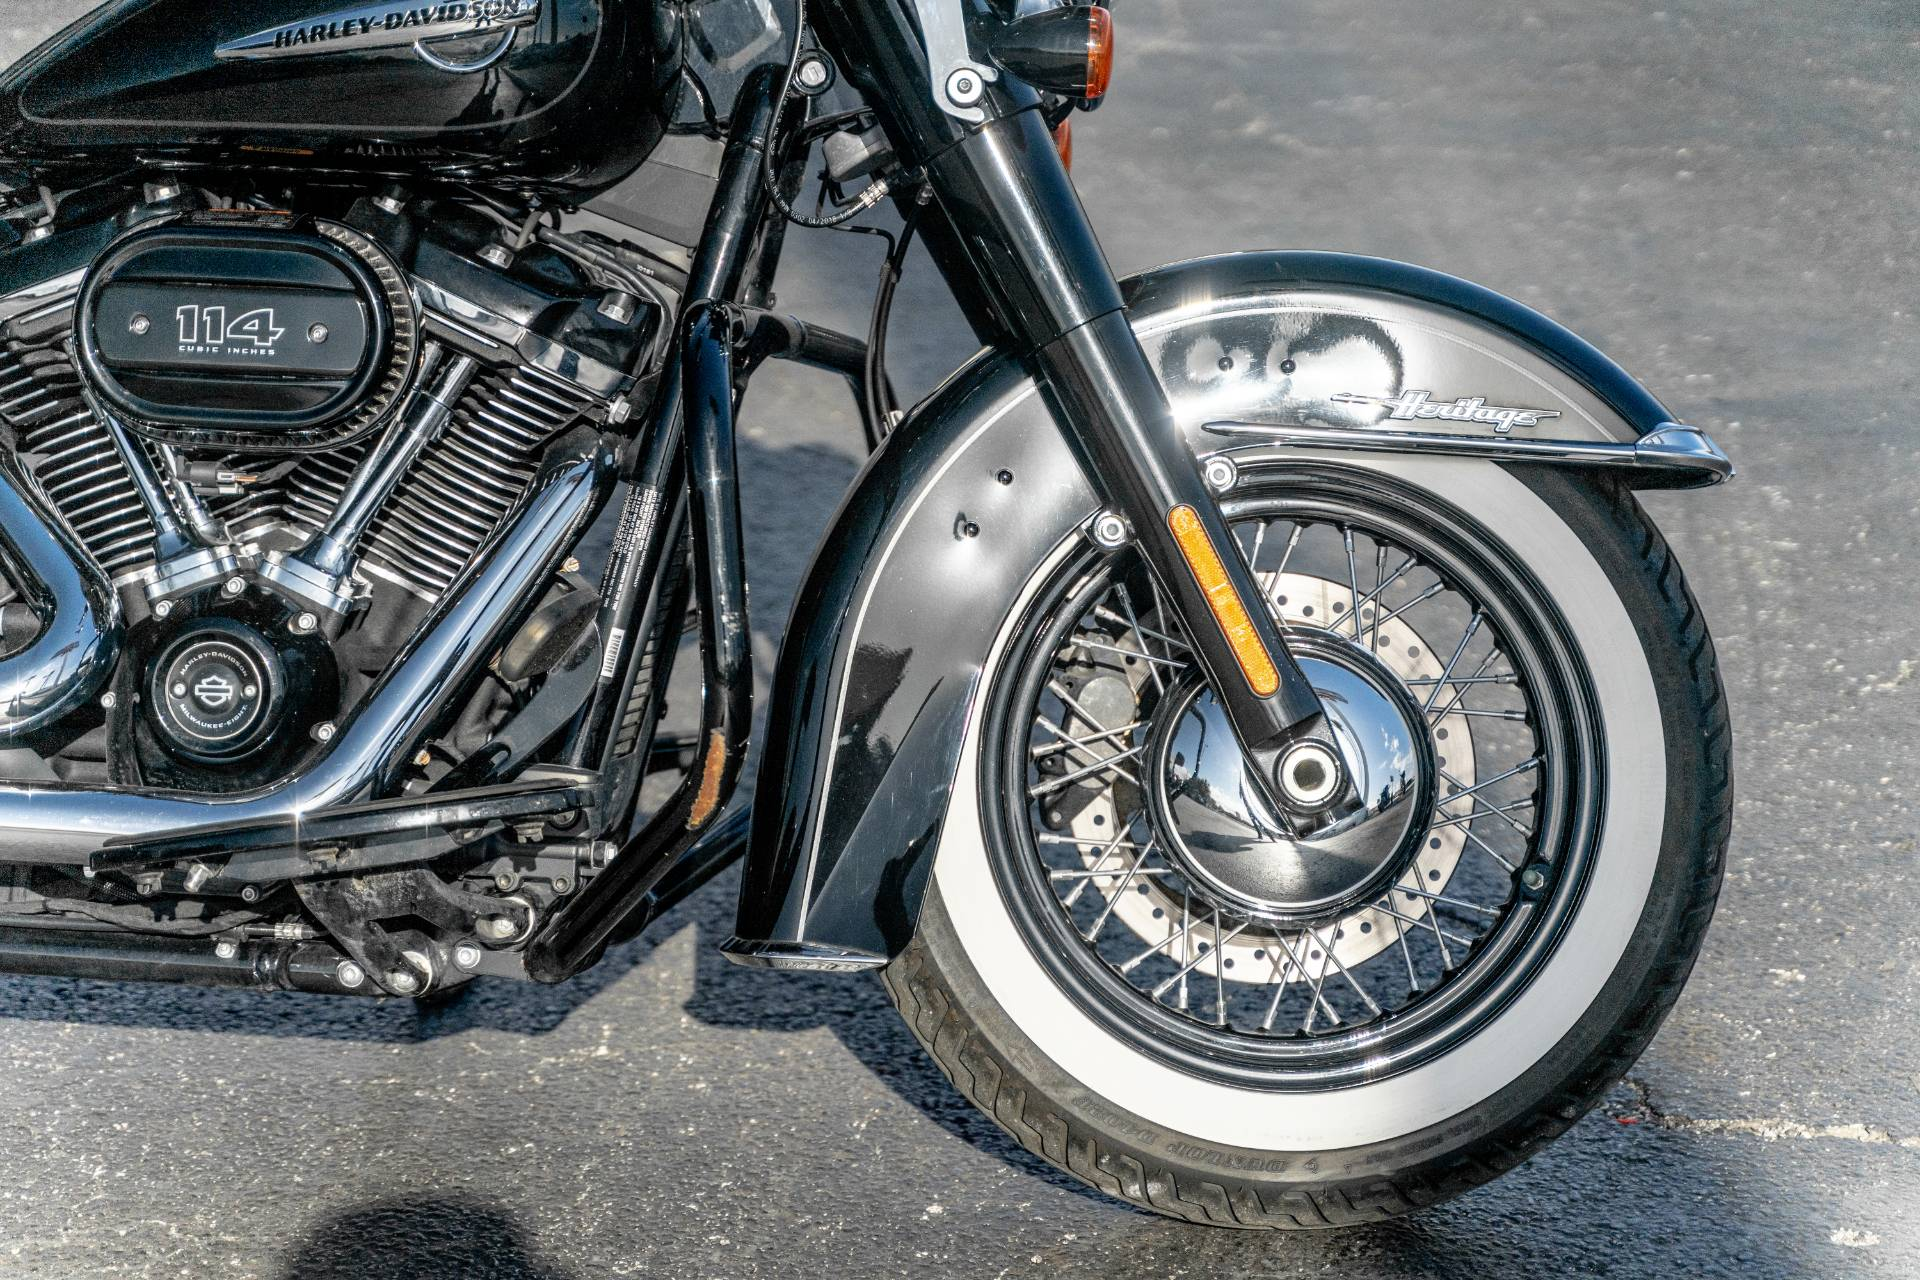 2019 Harley-Davidson Heritage Classic 114 in Houston, Texas - Photo 4